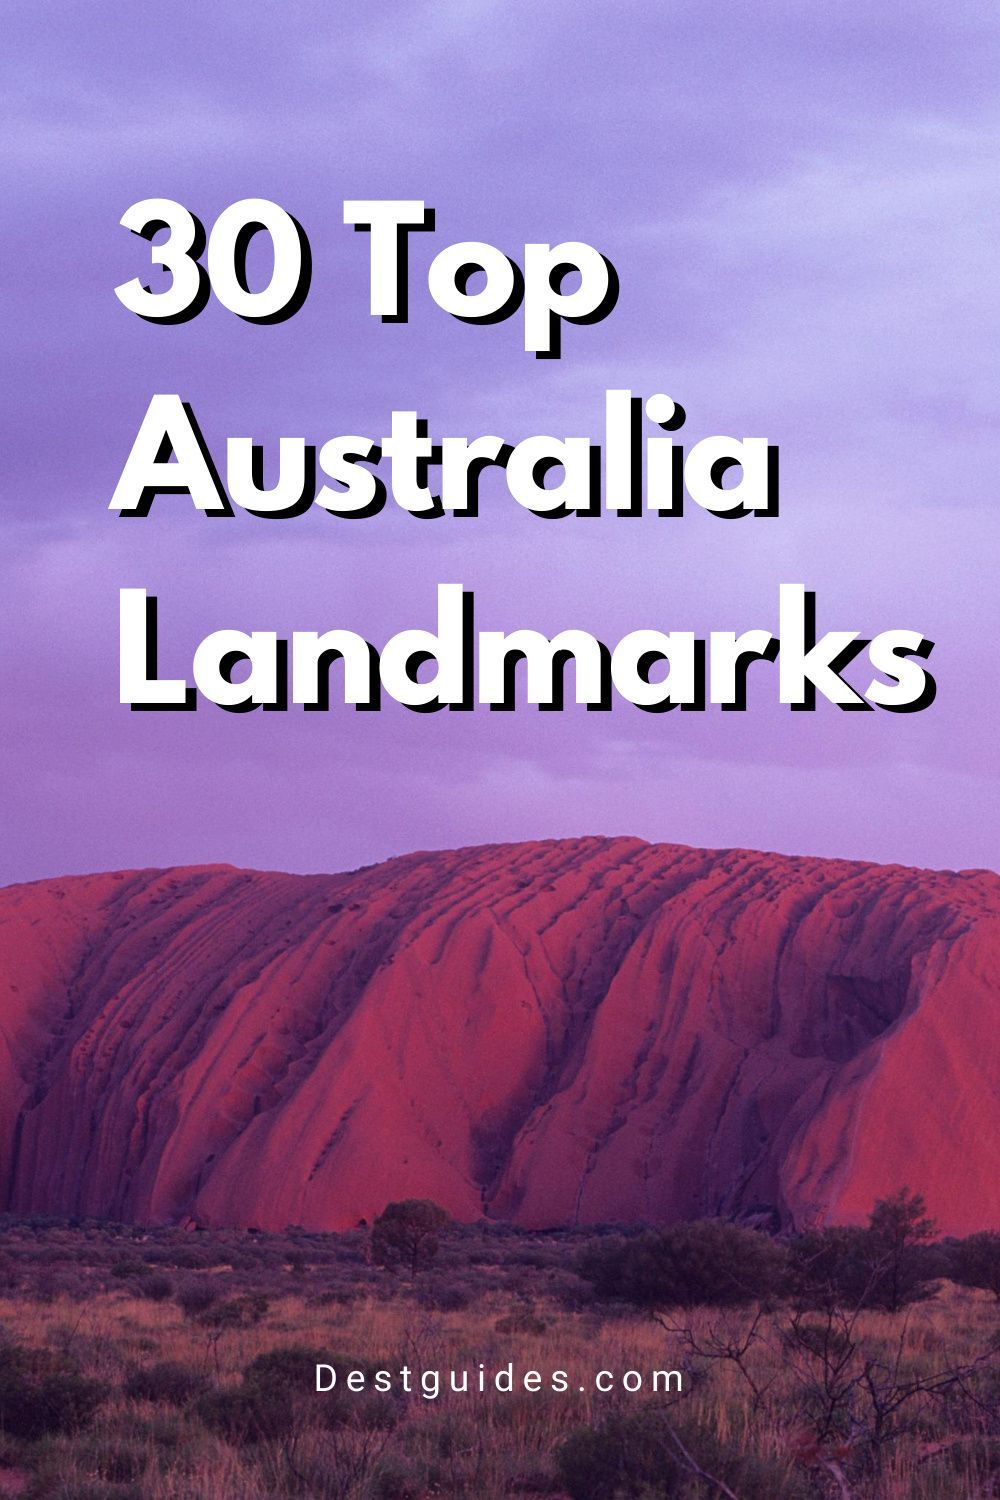 This Australia travel guide covers 30 of the most amazing Australia landmarks, such as the Sydney Opera House, the Great Barrier Reef, Uluru Rock, and more! Click through for more details.   Australia travel beautiful places bucket lists   Australia travel bucket lists   visiting Australia travel tips   Australia travel destinations   what to do in Australia   best things to do in Australia   Australia bucket List   #australia #travel #travelguide #bucketlist